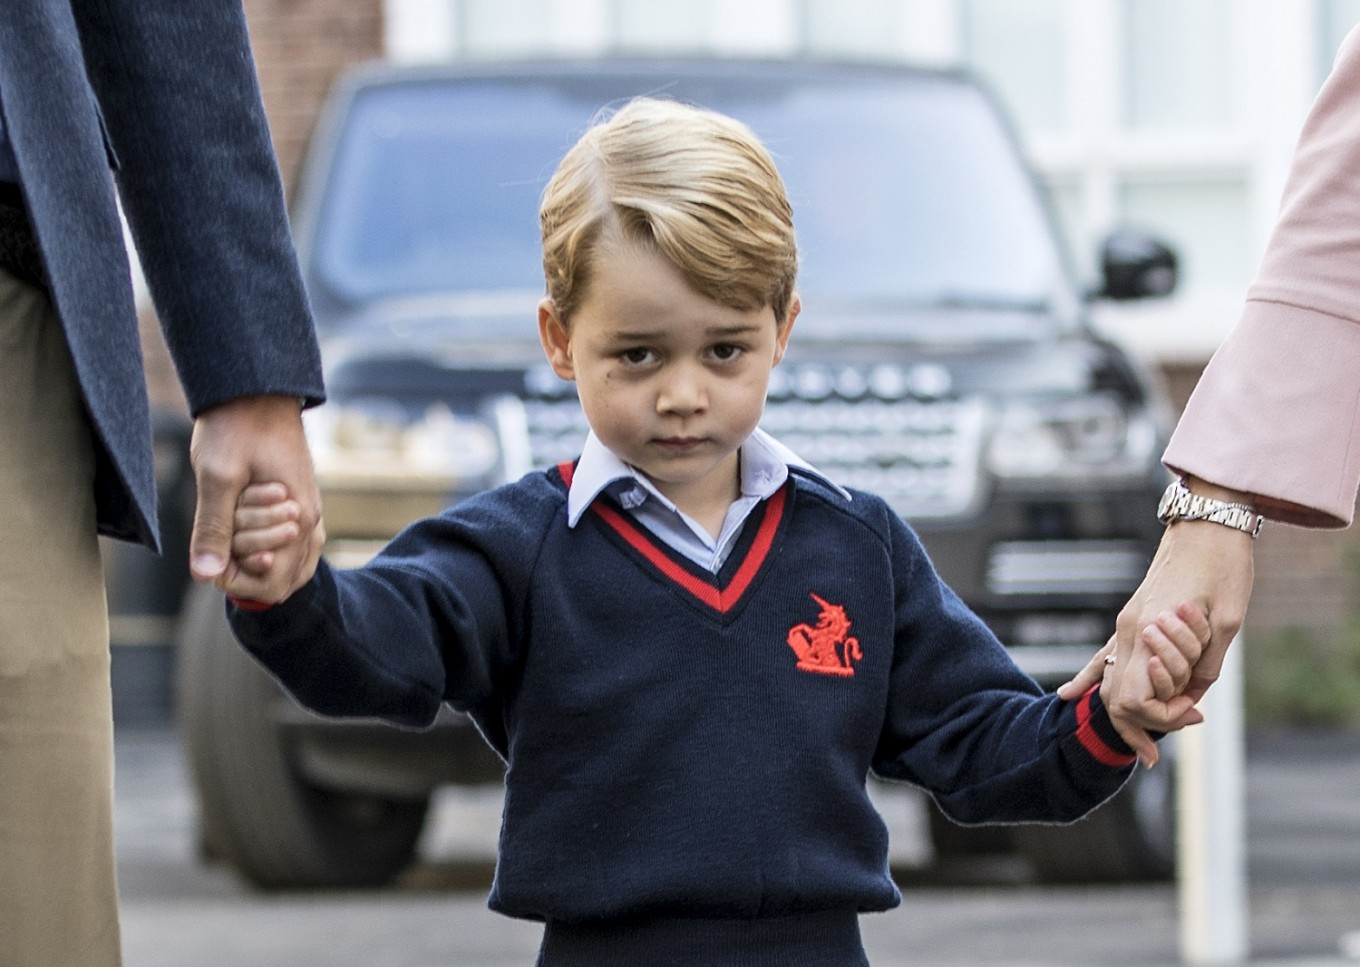 As Britain's Prince George turns 7, parents share new photos